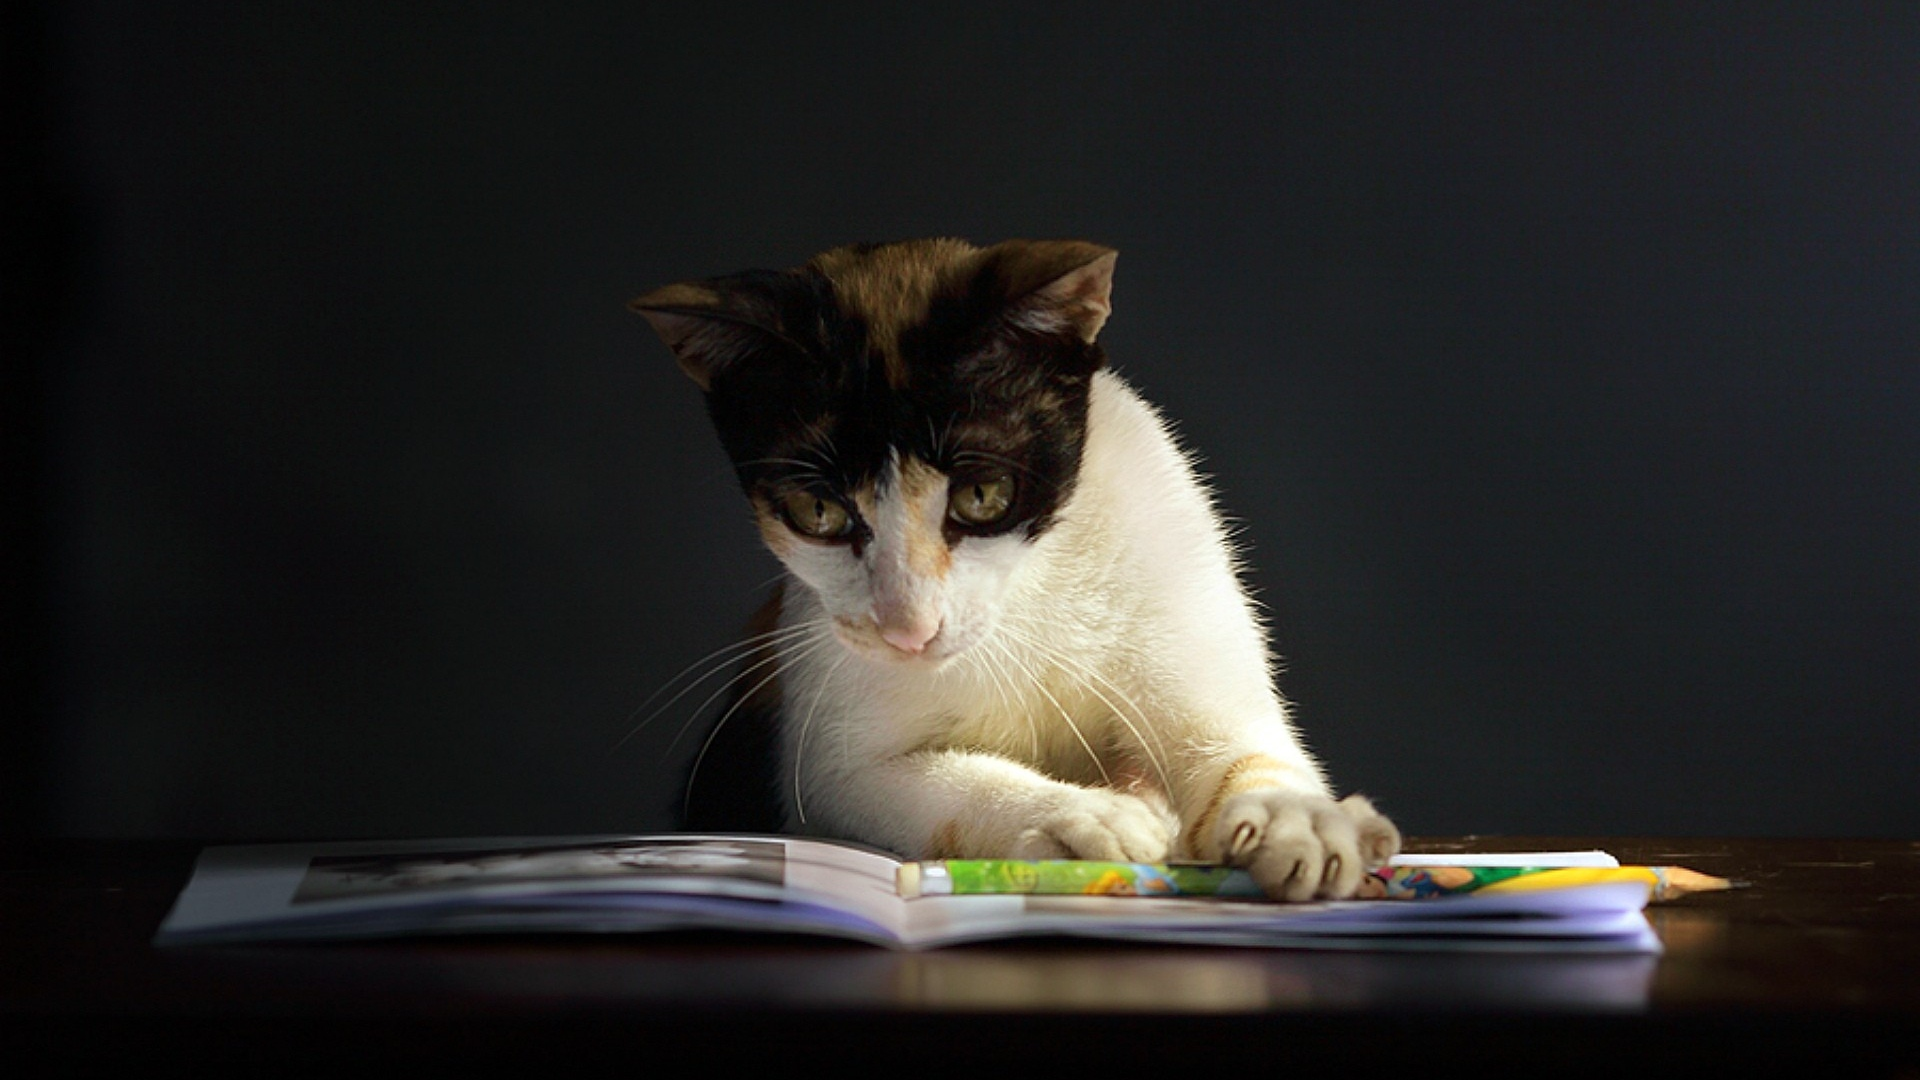 cat-book-curiosity-dark-spotted-1920x1080